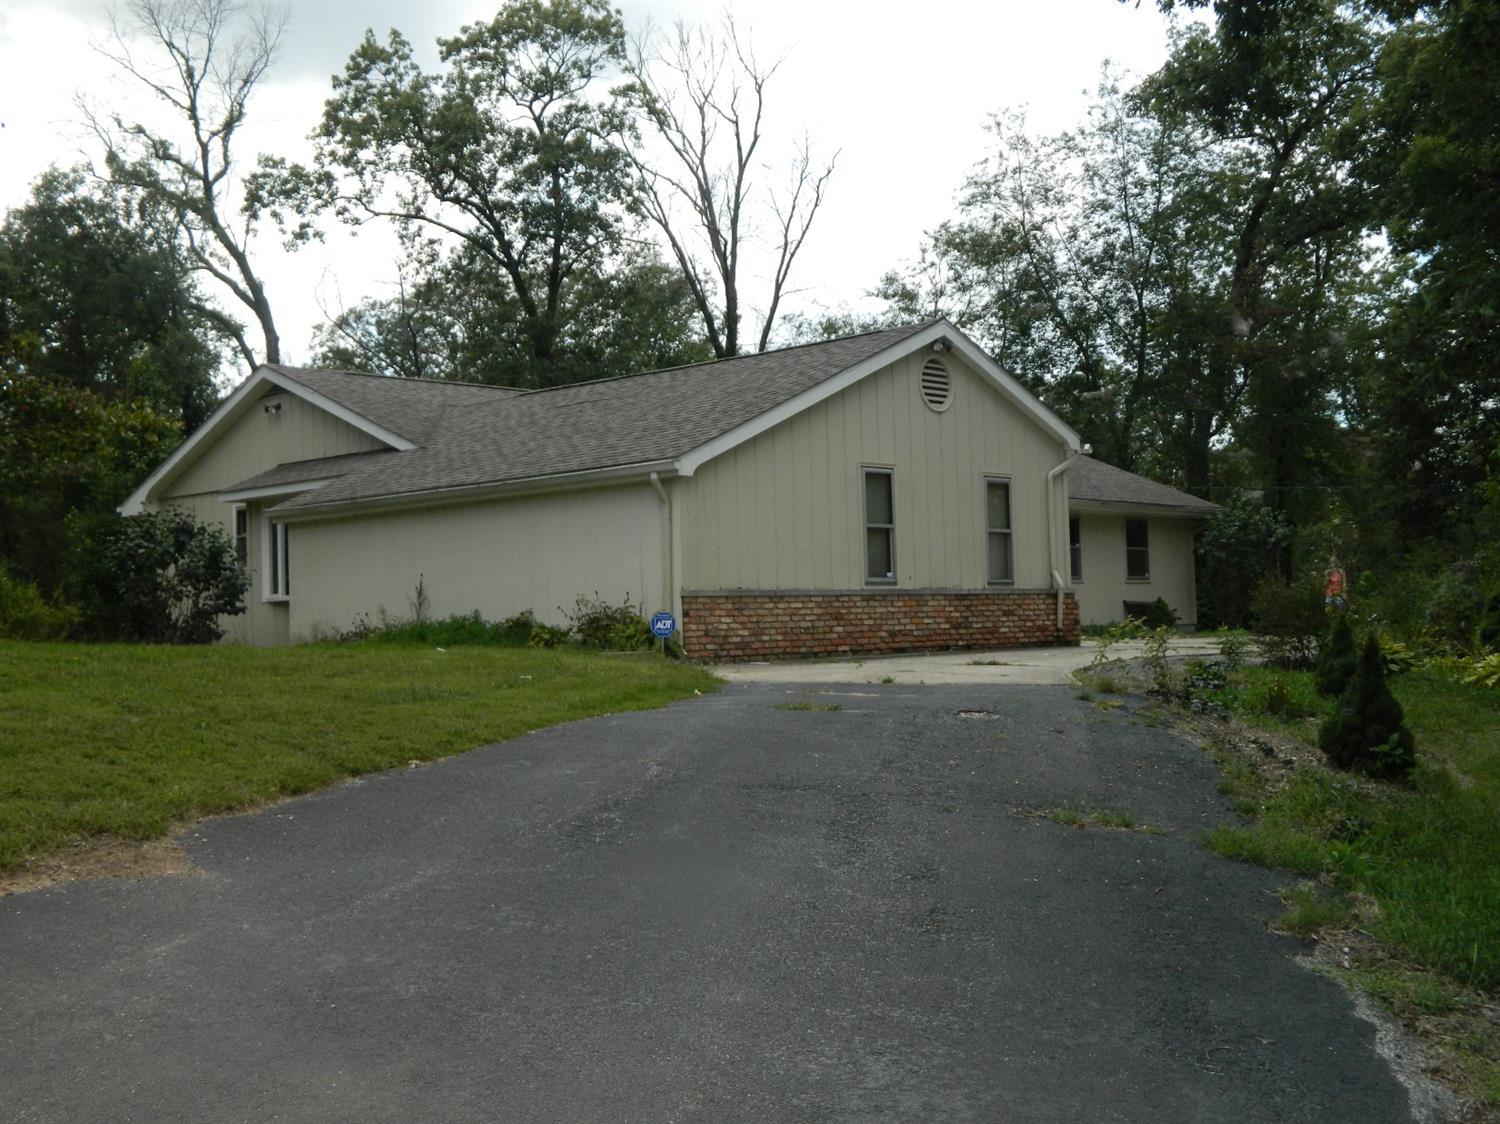 Ranch/1 Sty/Bungalow, Single Family Detach - DeMotte, IN (photo 4)